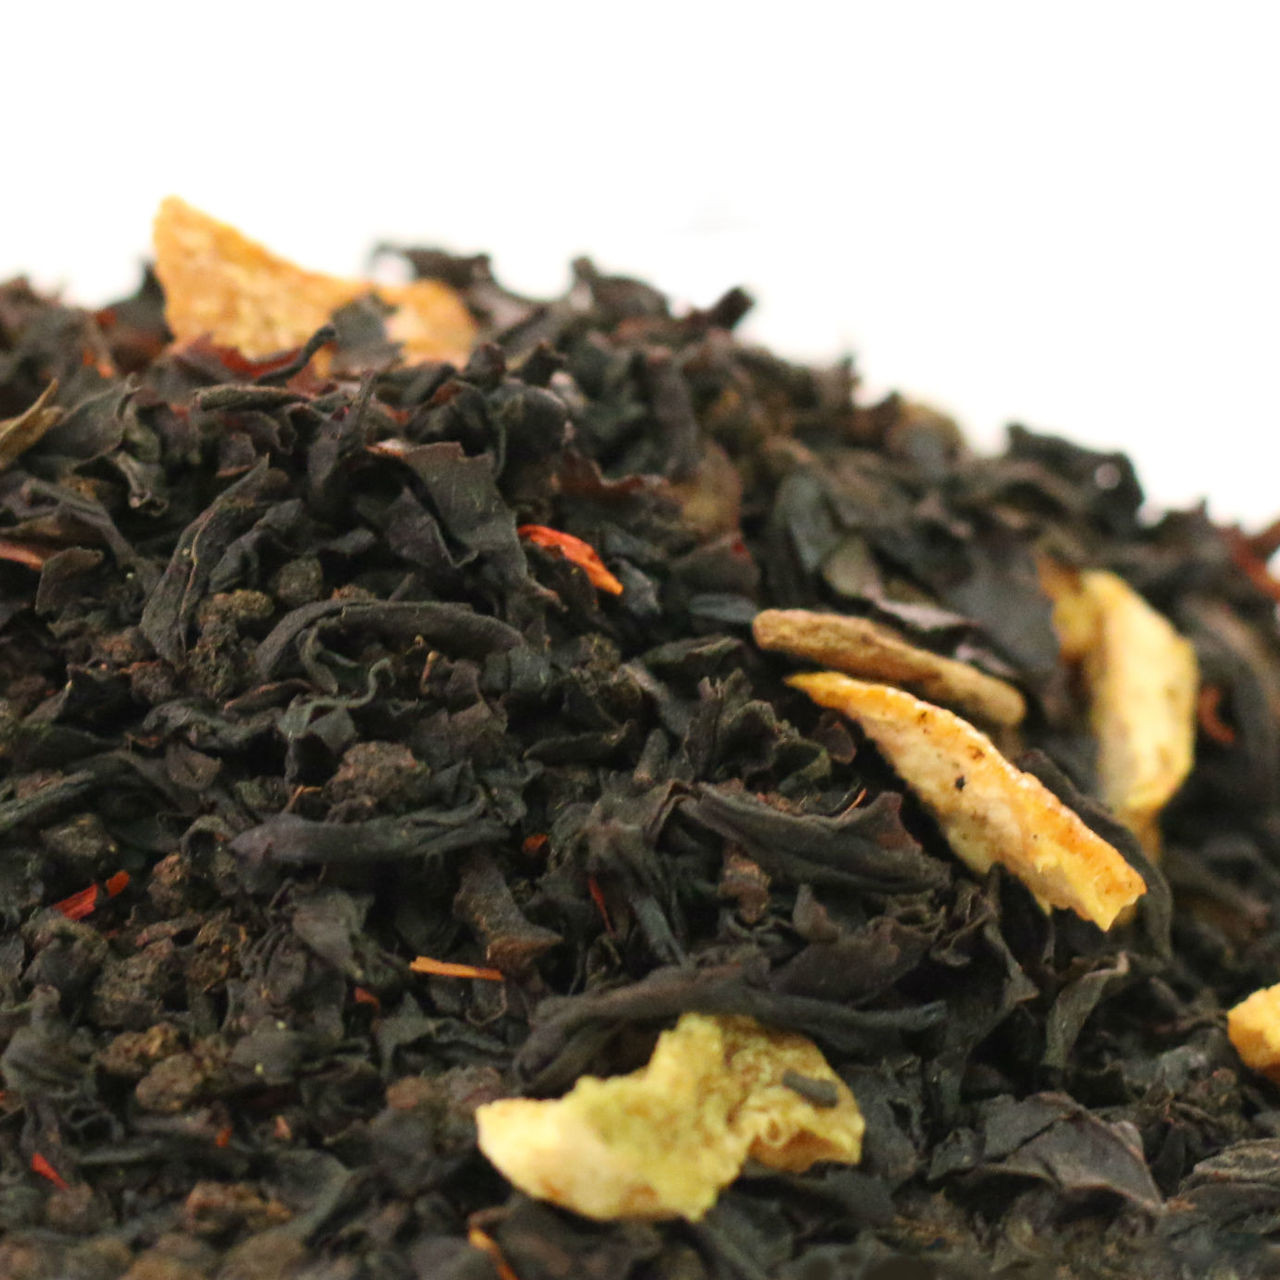 Our lightly spiced black tea is perfect for warming the spirit during our cold winter months. Our blend features delicate citrus, cinnamon and vanilla notes. This is best served hot, takes well to sweetener and orange or lemon slices.